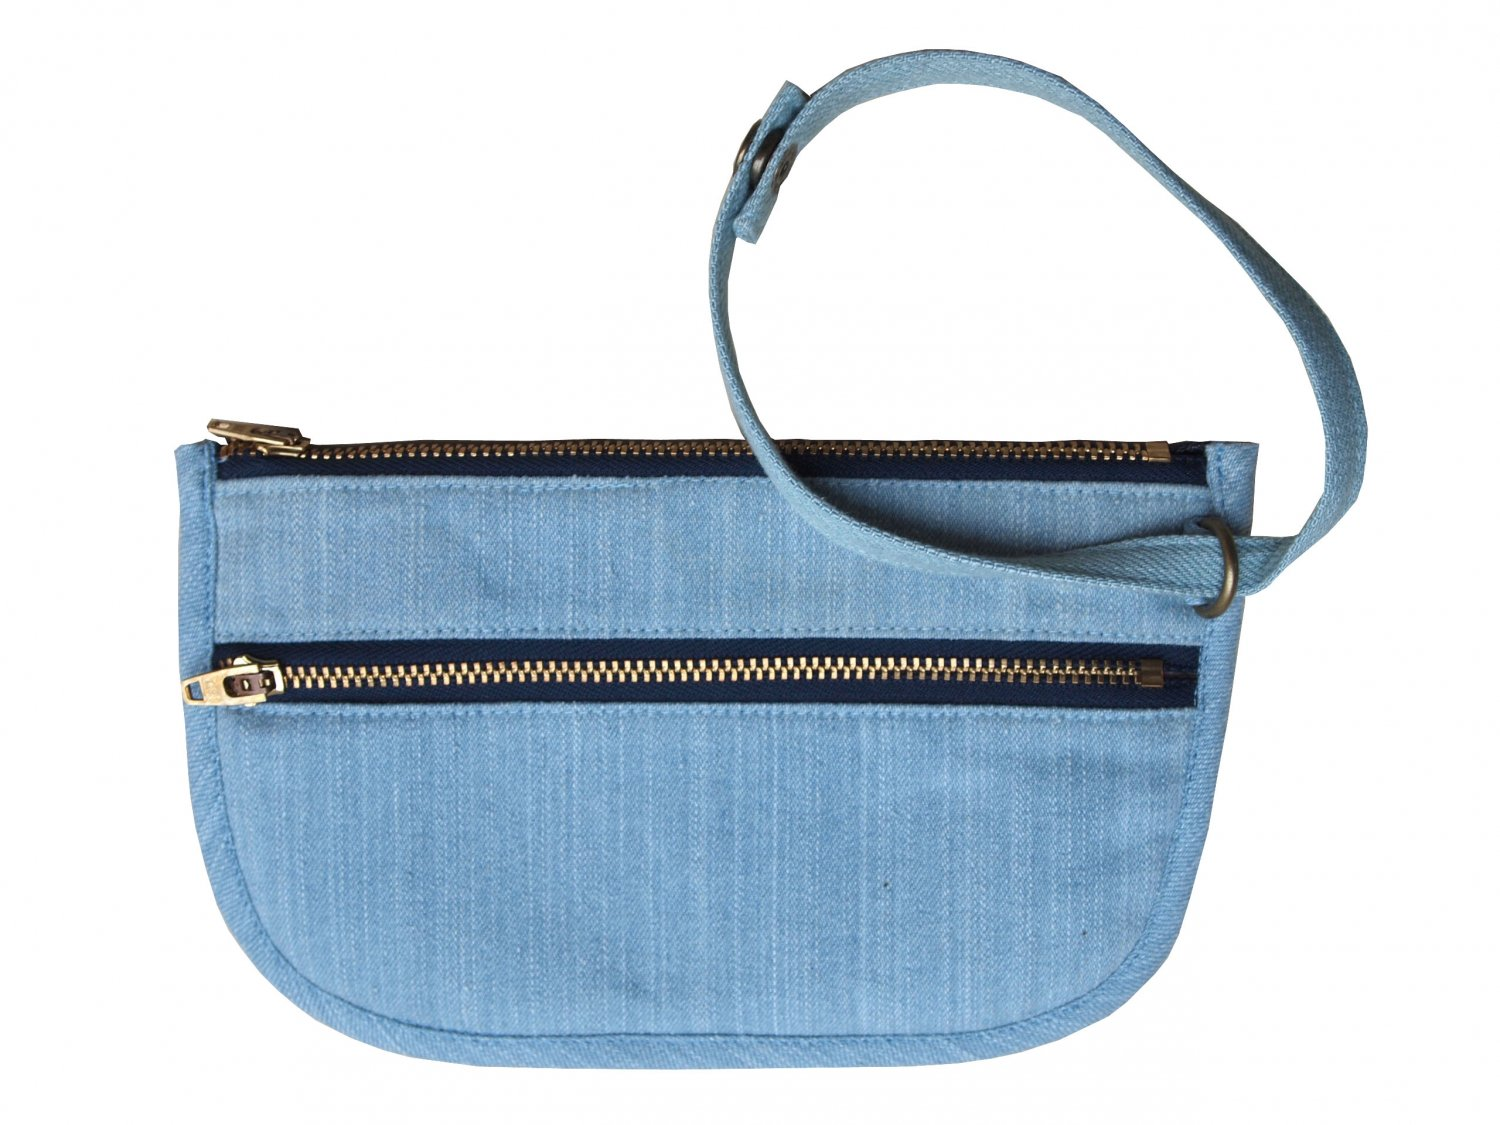 TonTubTim Duo zipper bag: Light Blue Jean-Black lining